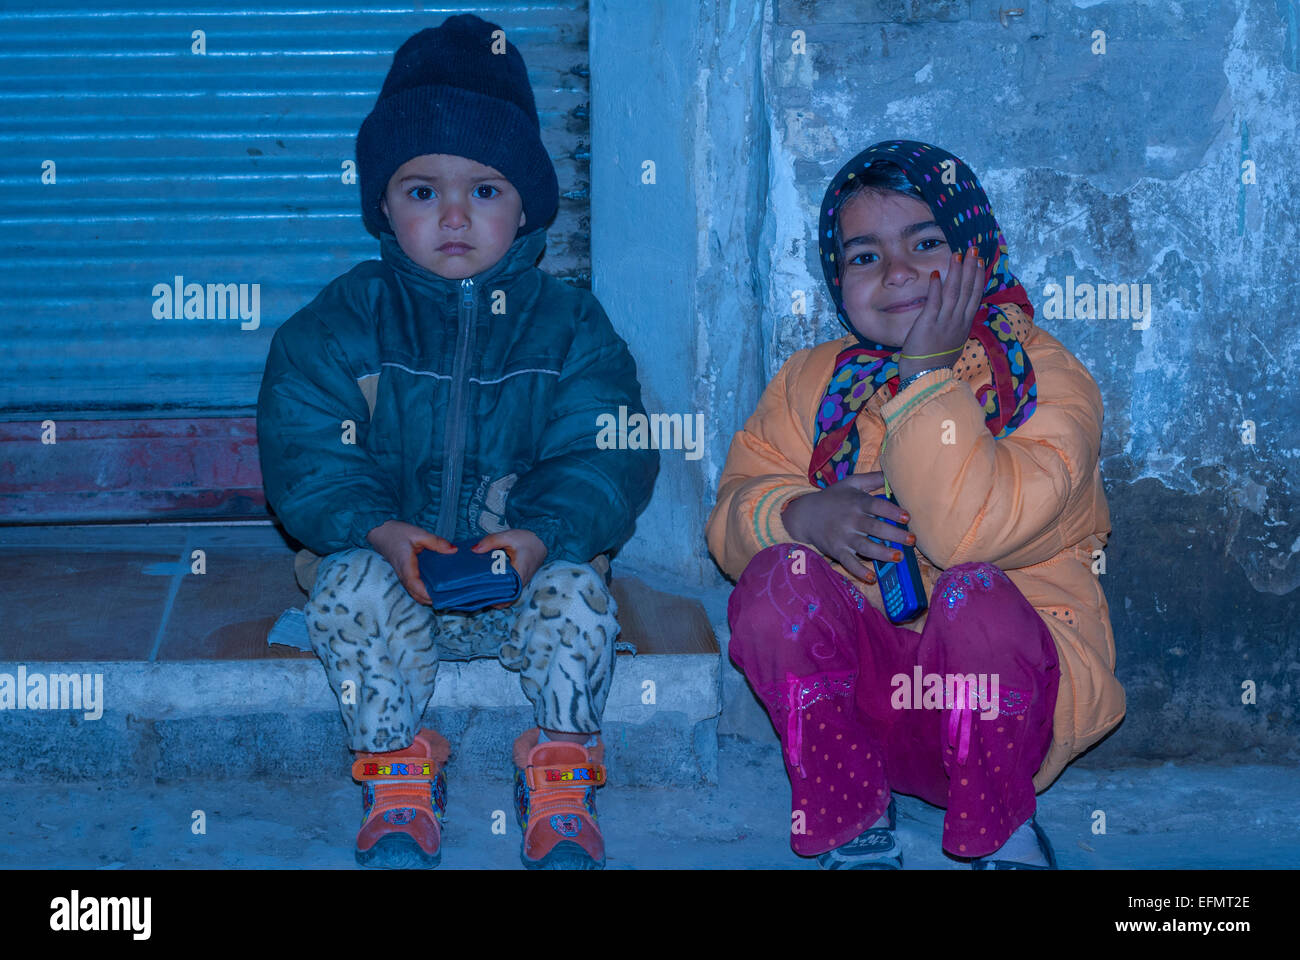 Afghan refugee kids, Kerman, Iran - Stock Image